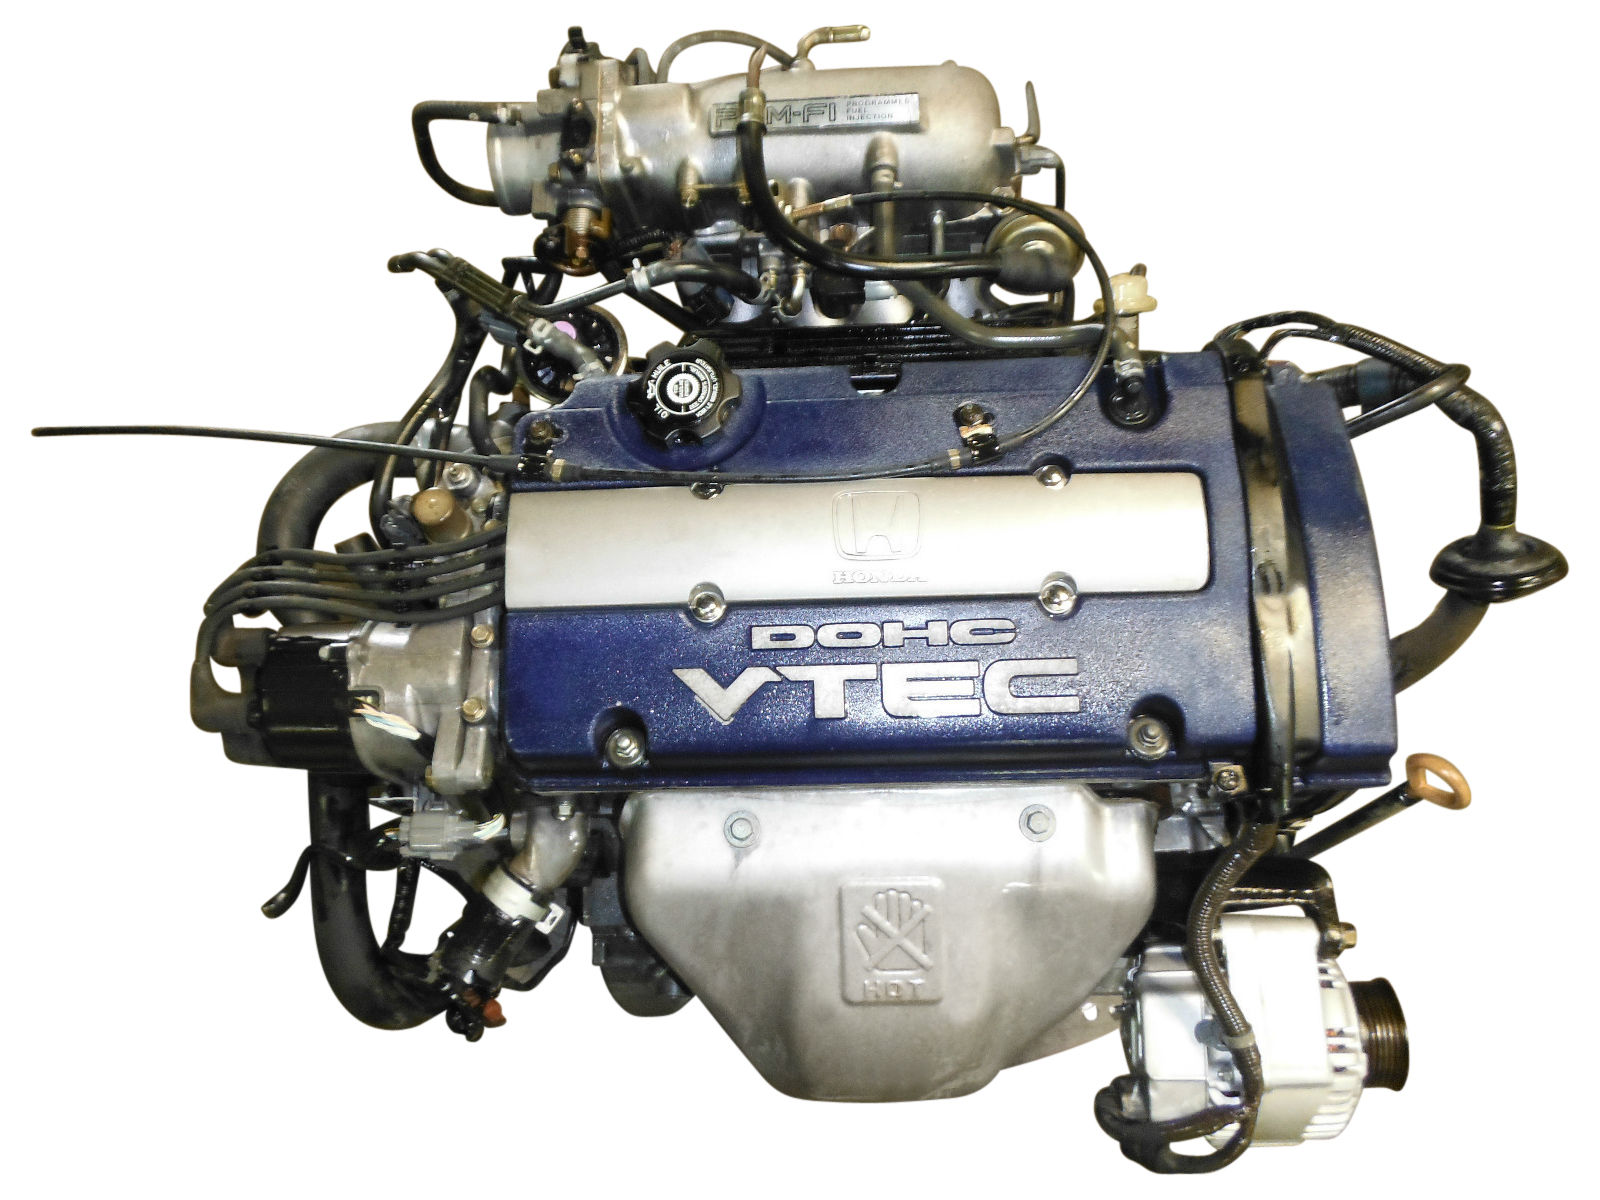 Honda Prelude Engine For 1992 2001 Sale Vtec H22a Japanese 1994 View Large Image